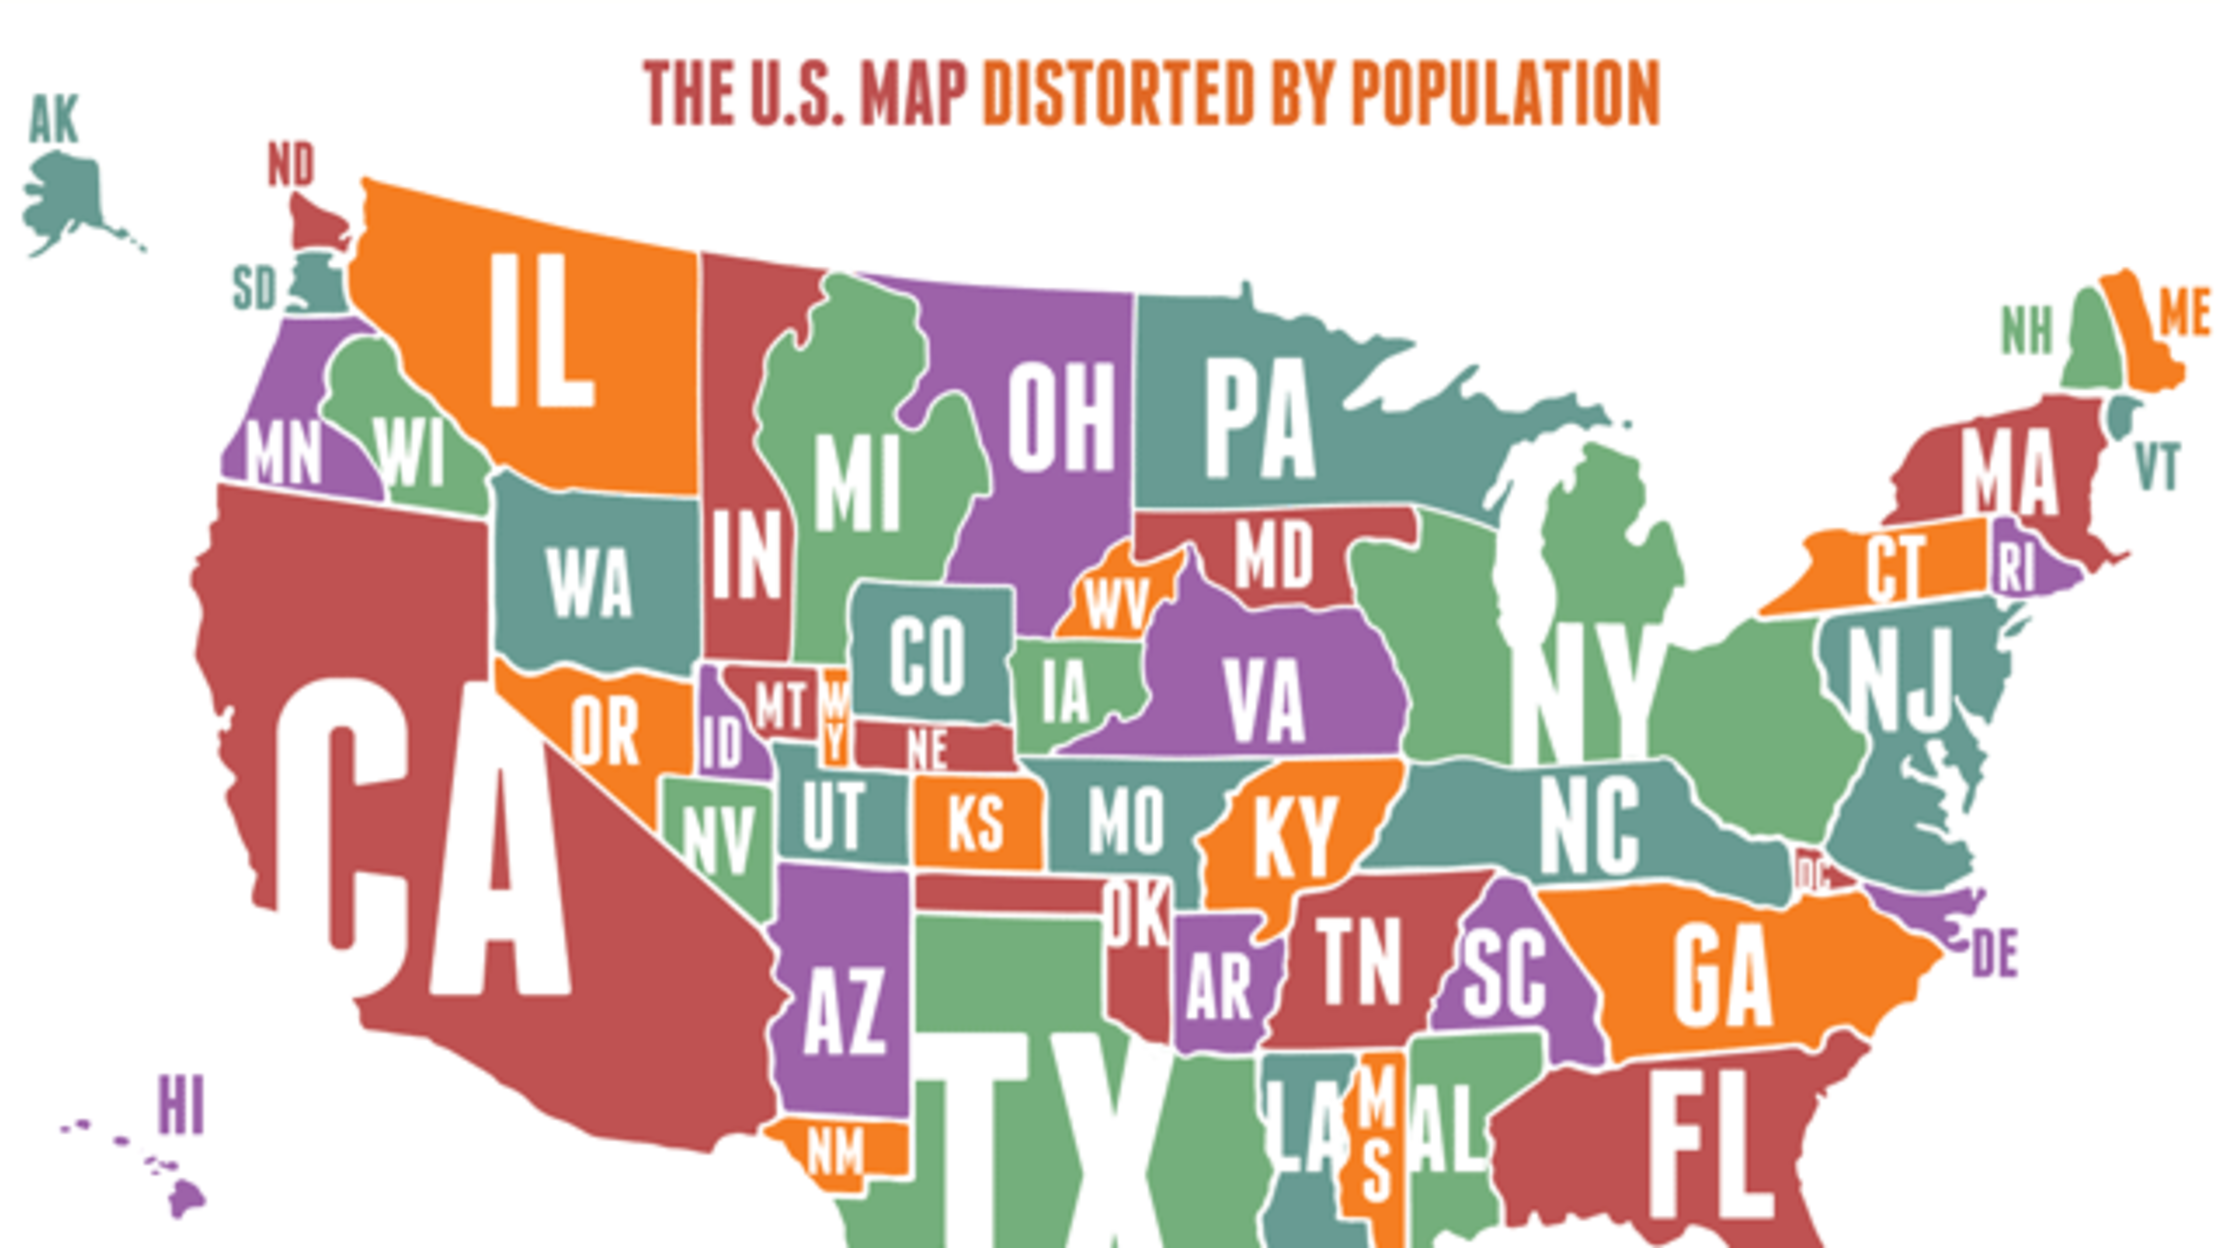 Us Map Distorted By Population The U.S. Map Distorted by Population | Mental Floss